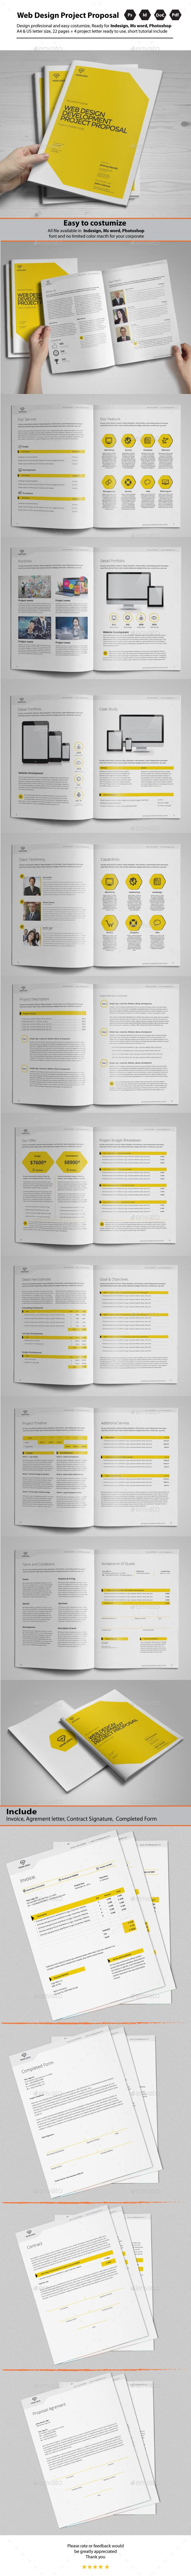 Best Images About FormatProposal Template On